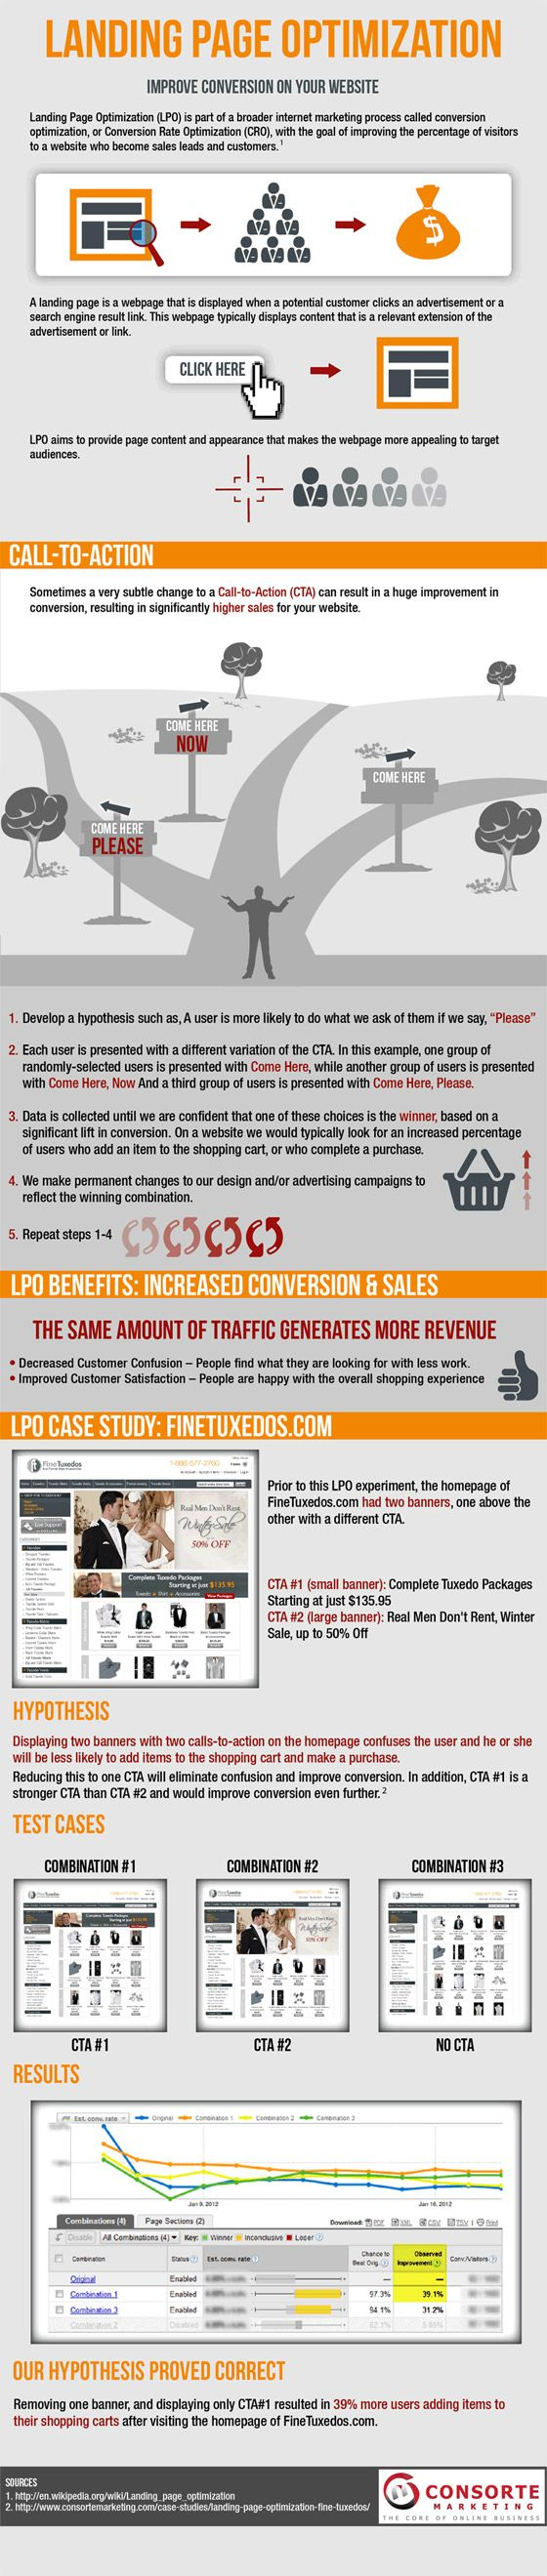 Landing Page Optimization : Improve #conversion On Your Website. #infographic